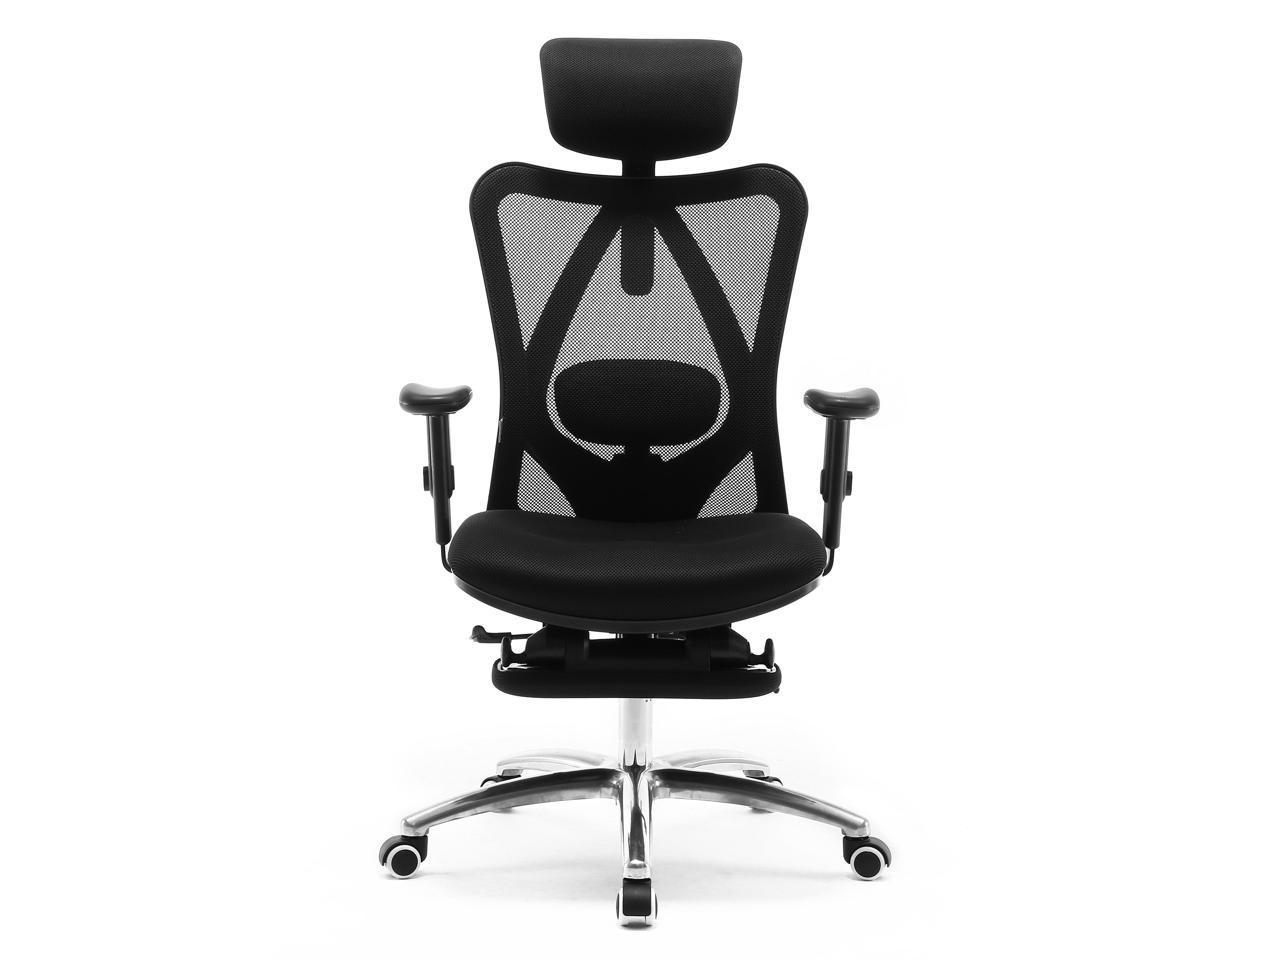 SIHOO Ergonomics Office Chair Recliner Chair, Adjustable Headrests, with Backrest and Armrest